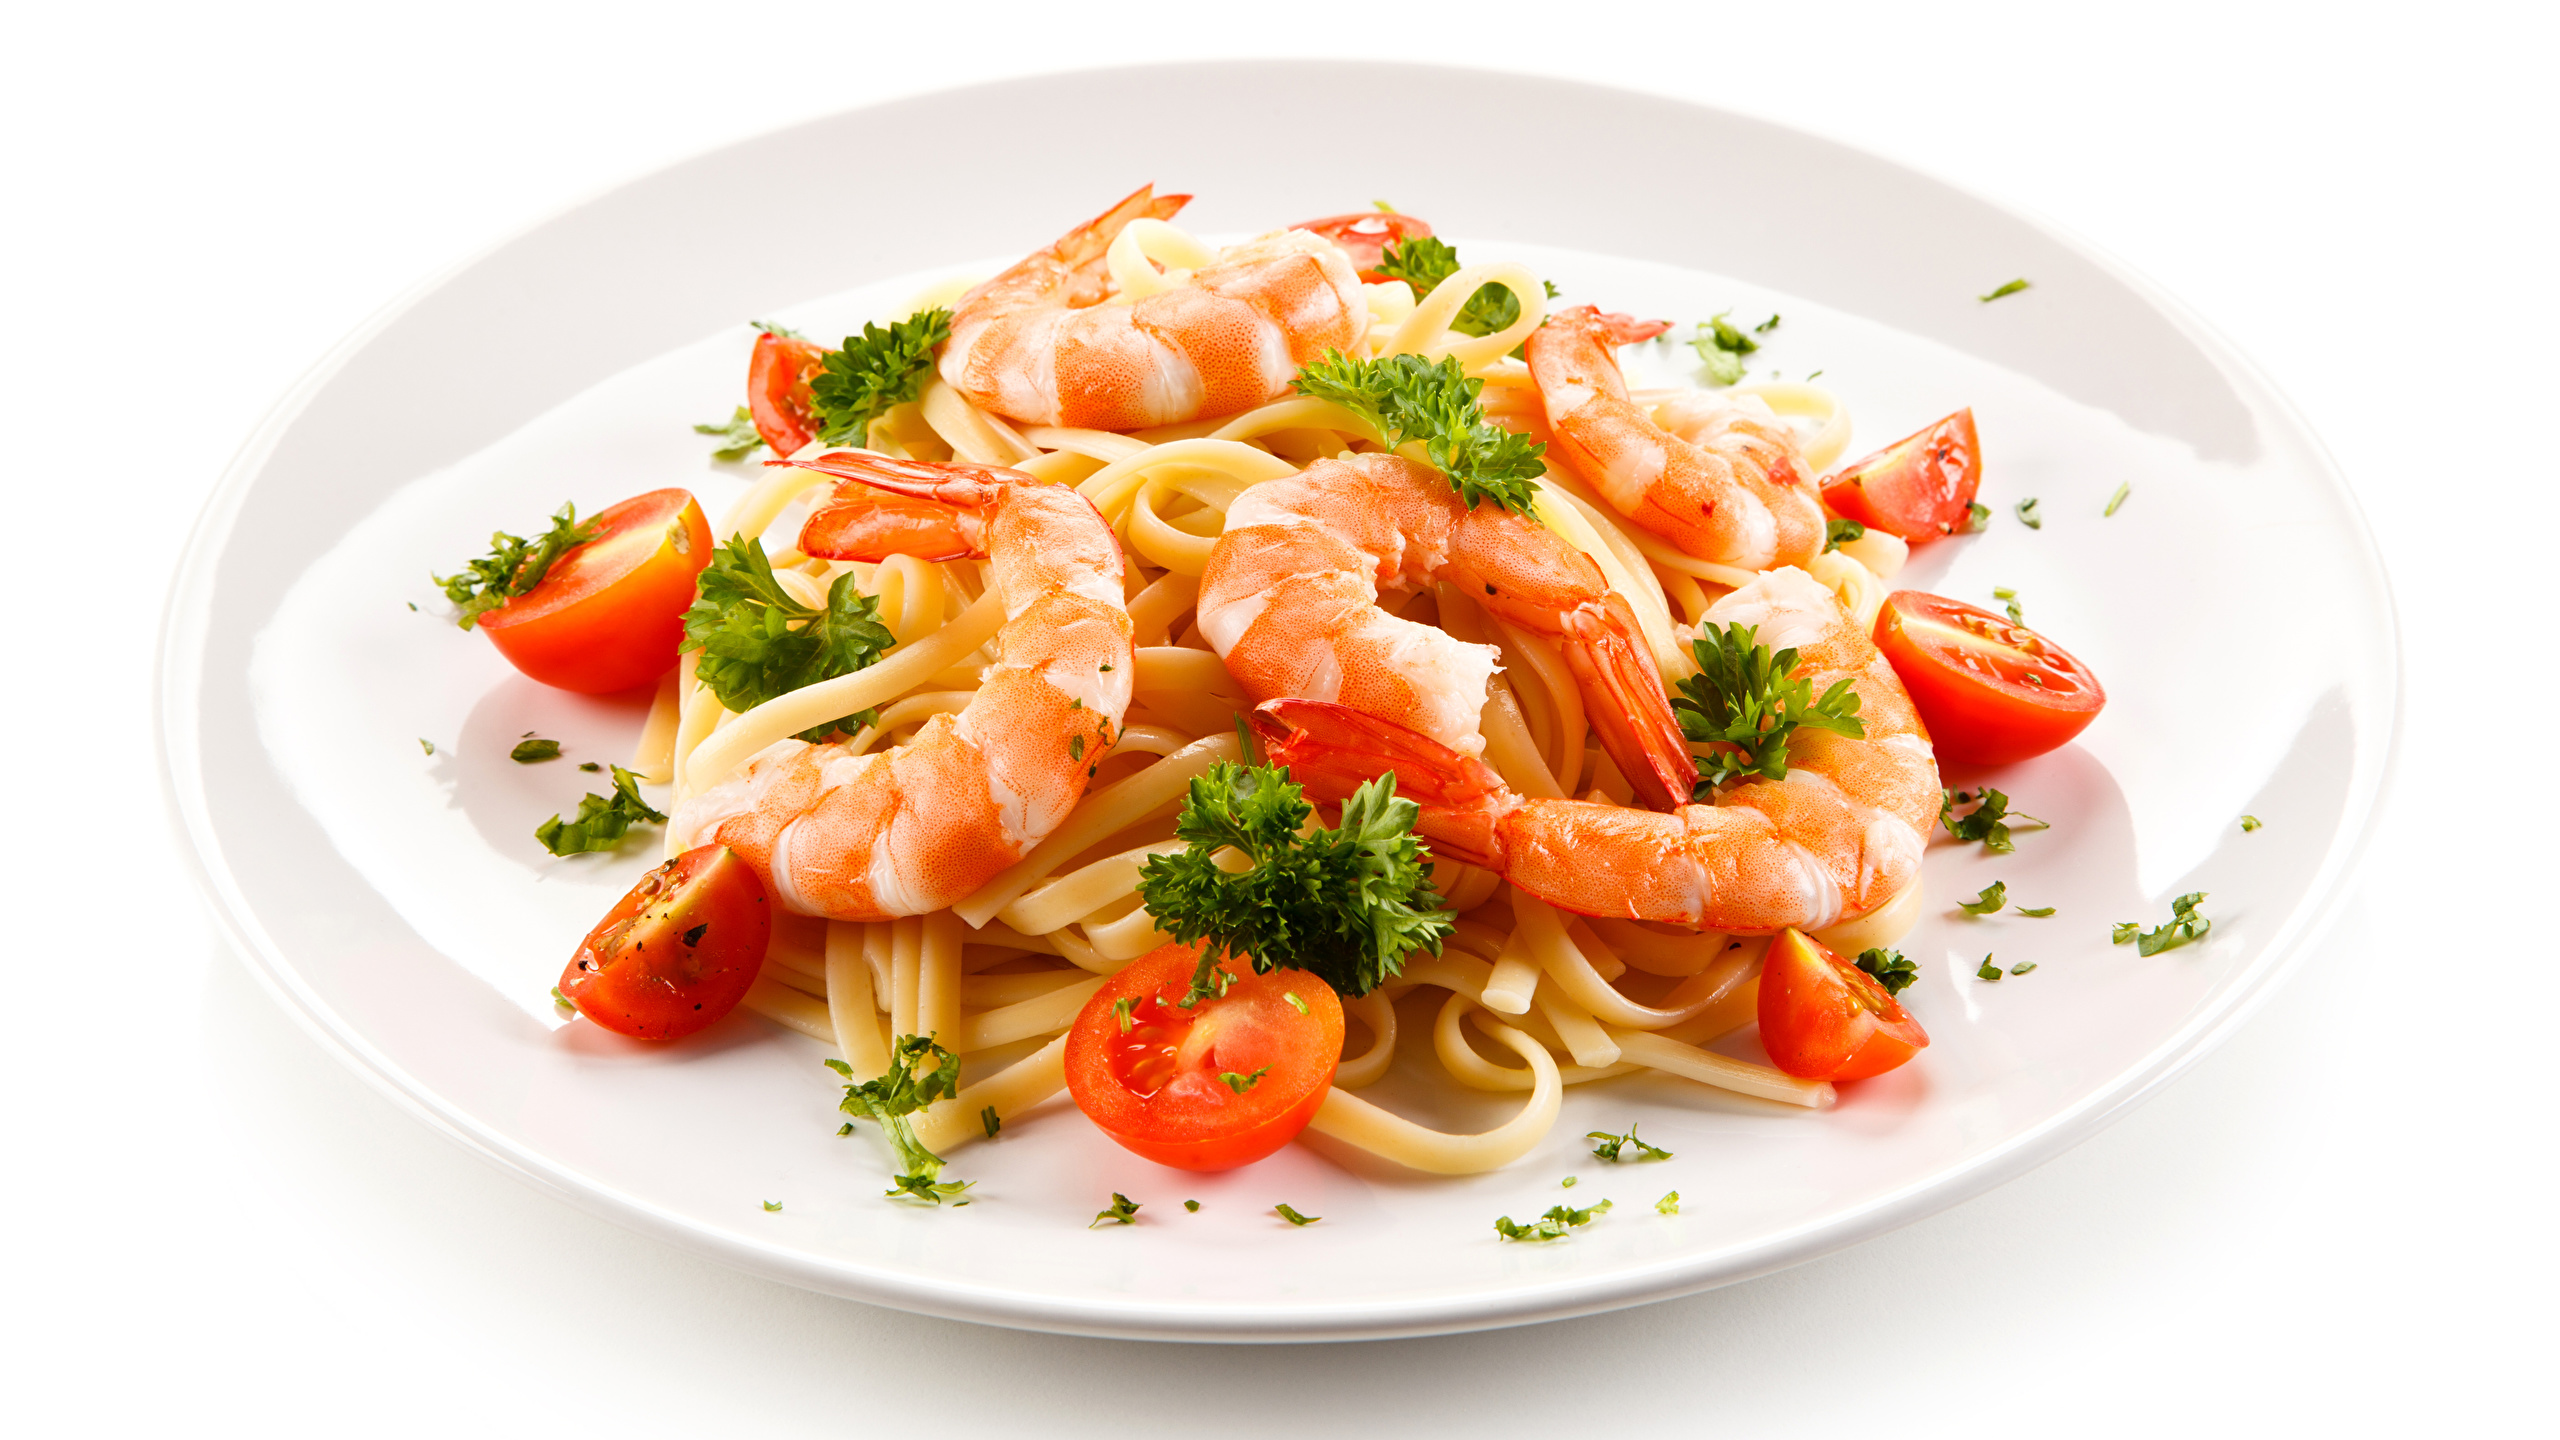 The_second_dishes_Shrimp_Tomatoes_White_background_517162_2560x1440